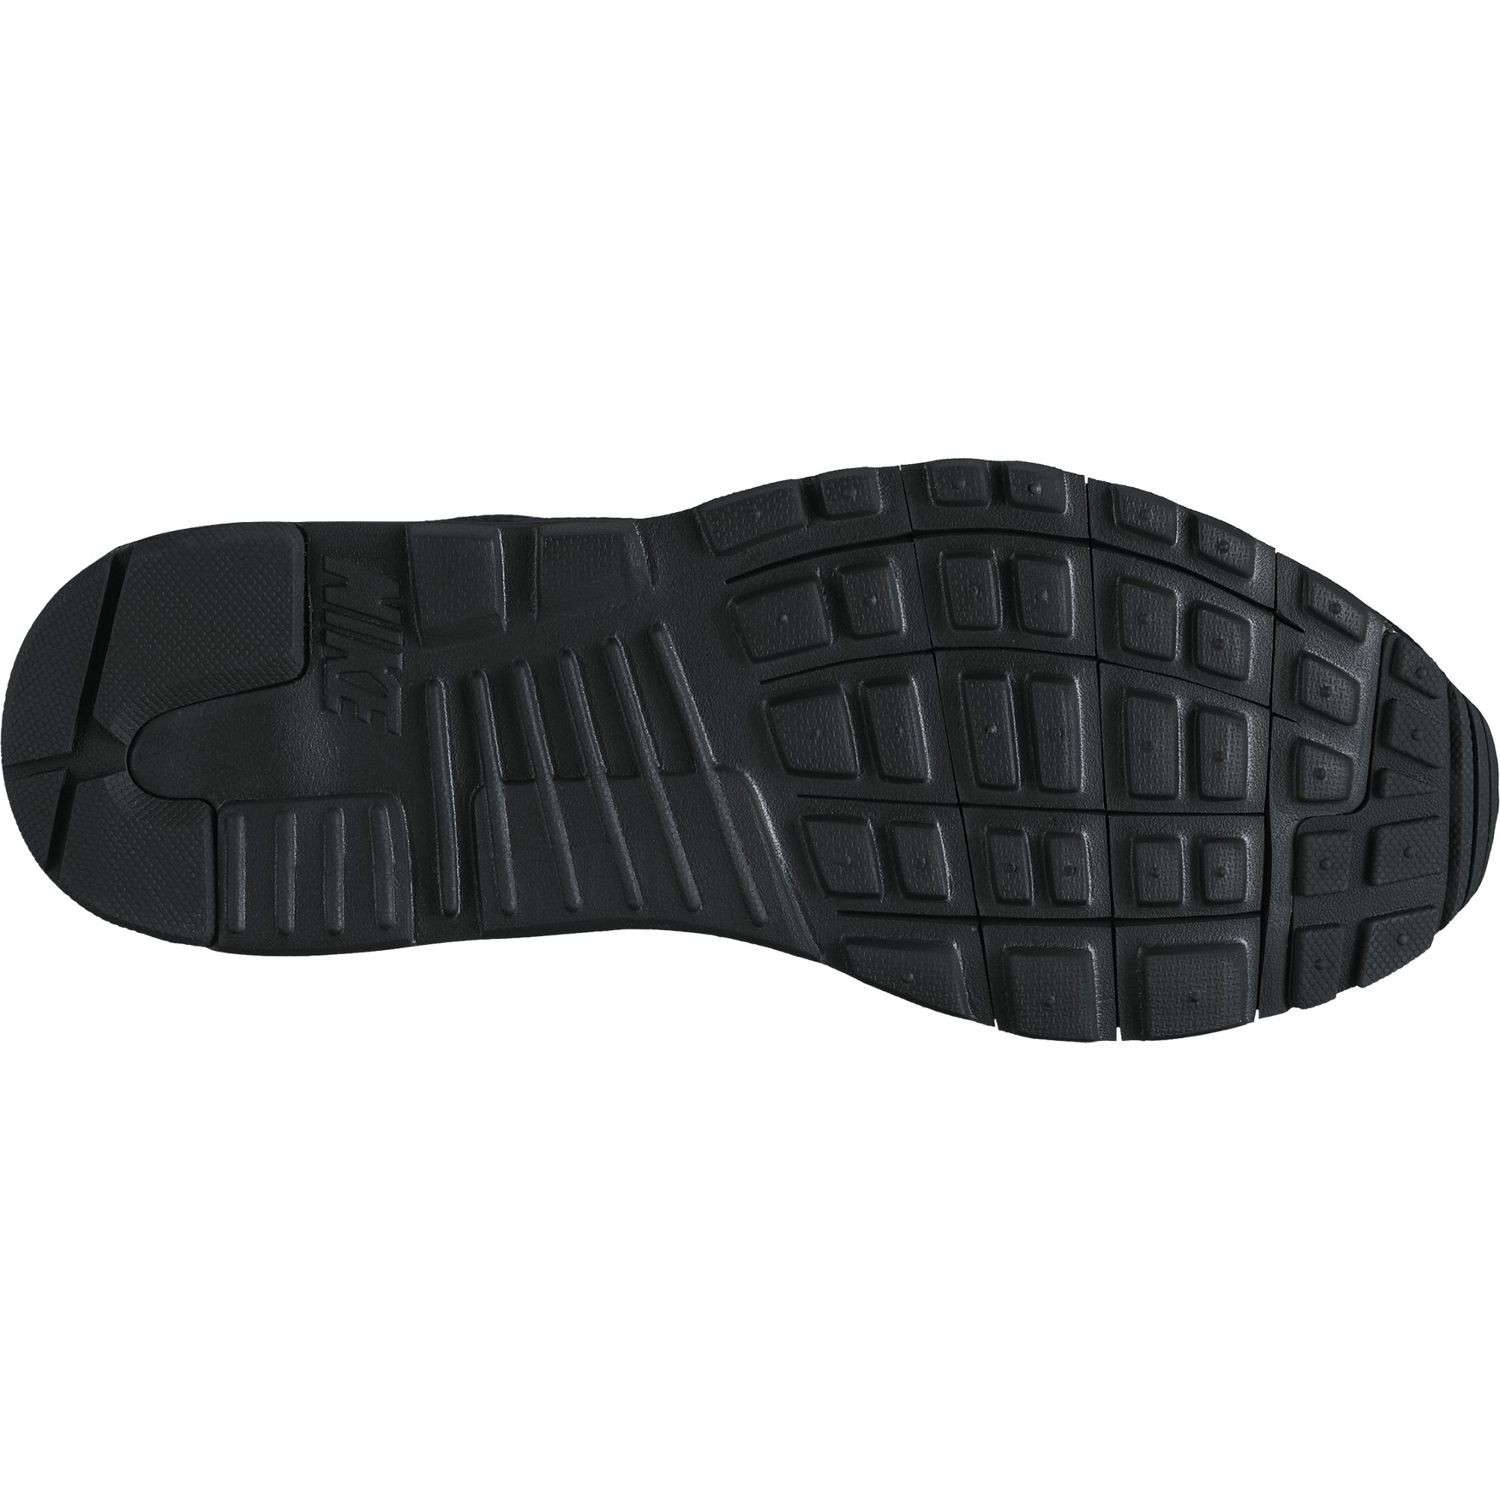 Nike Air Max Tavas (GS) All Black 814443 005